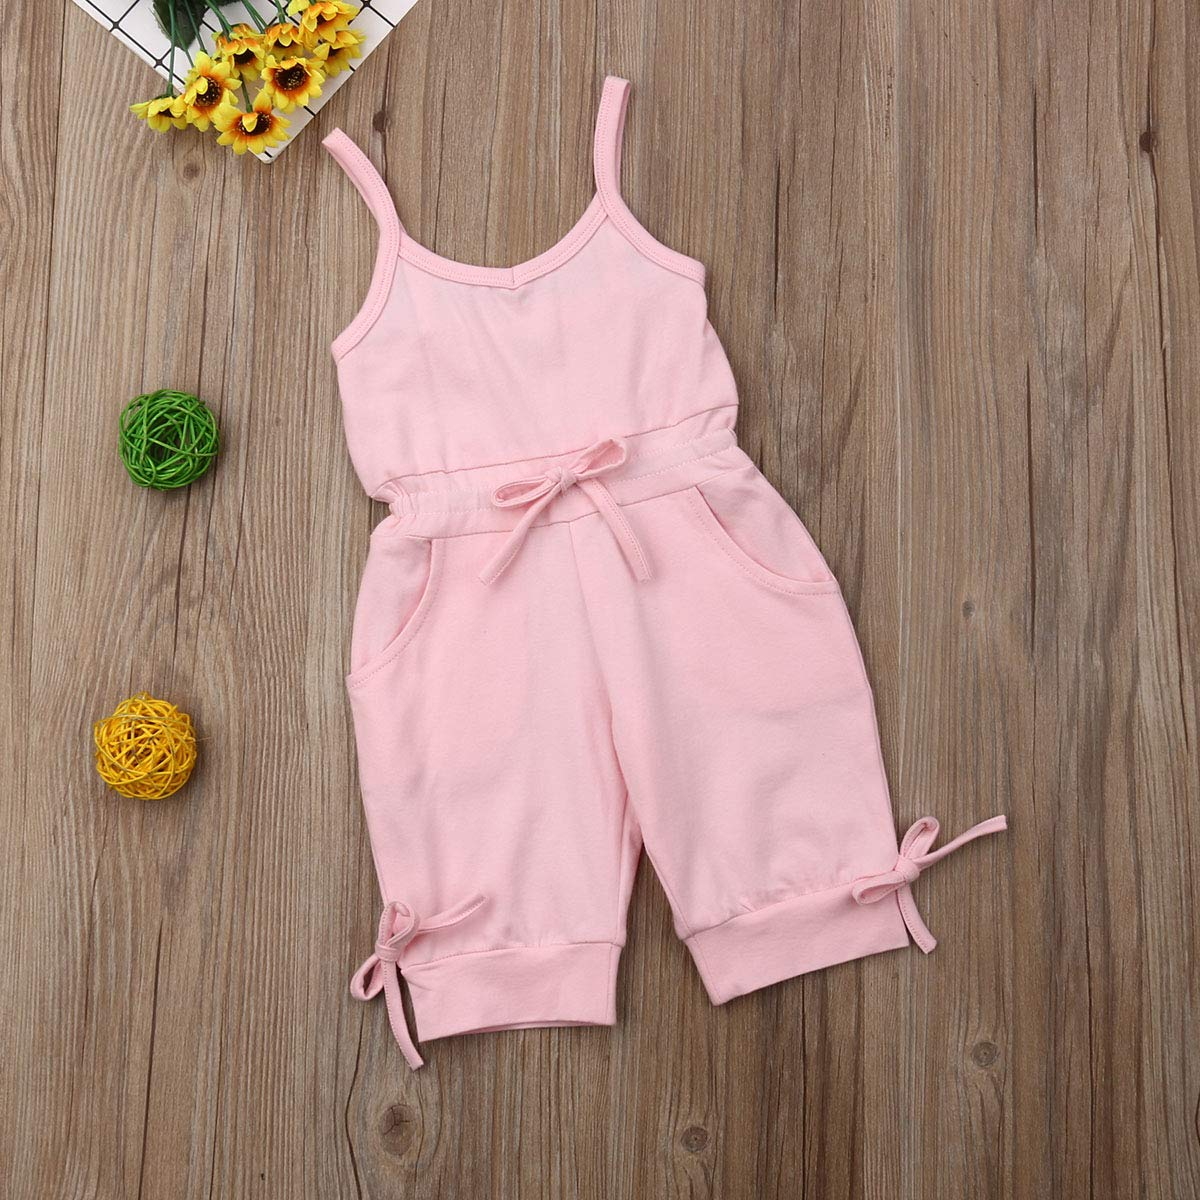 BeQeuewll Toddler Baby Girls Summer Jumpsuits Solid Color Sleeveless Rompers Overalls Outfits Clothes